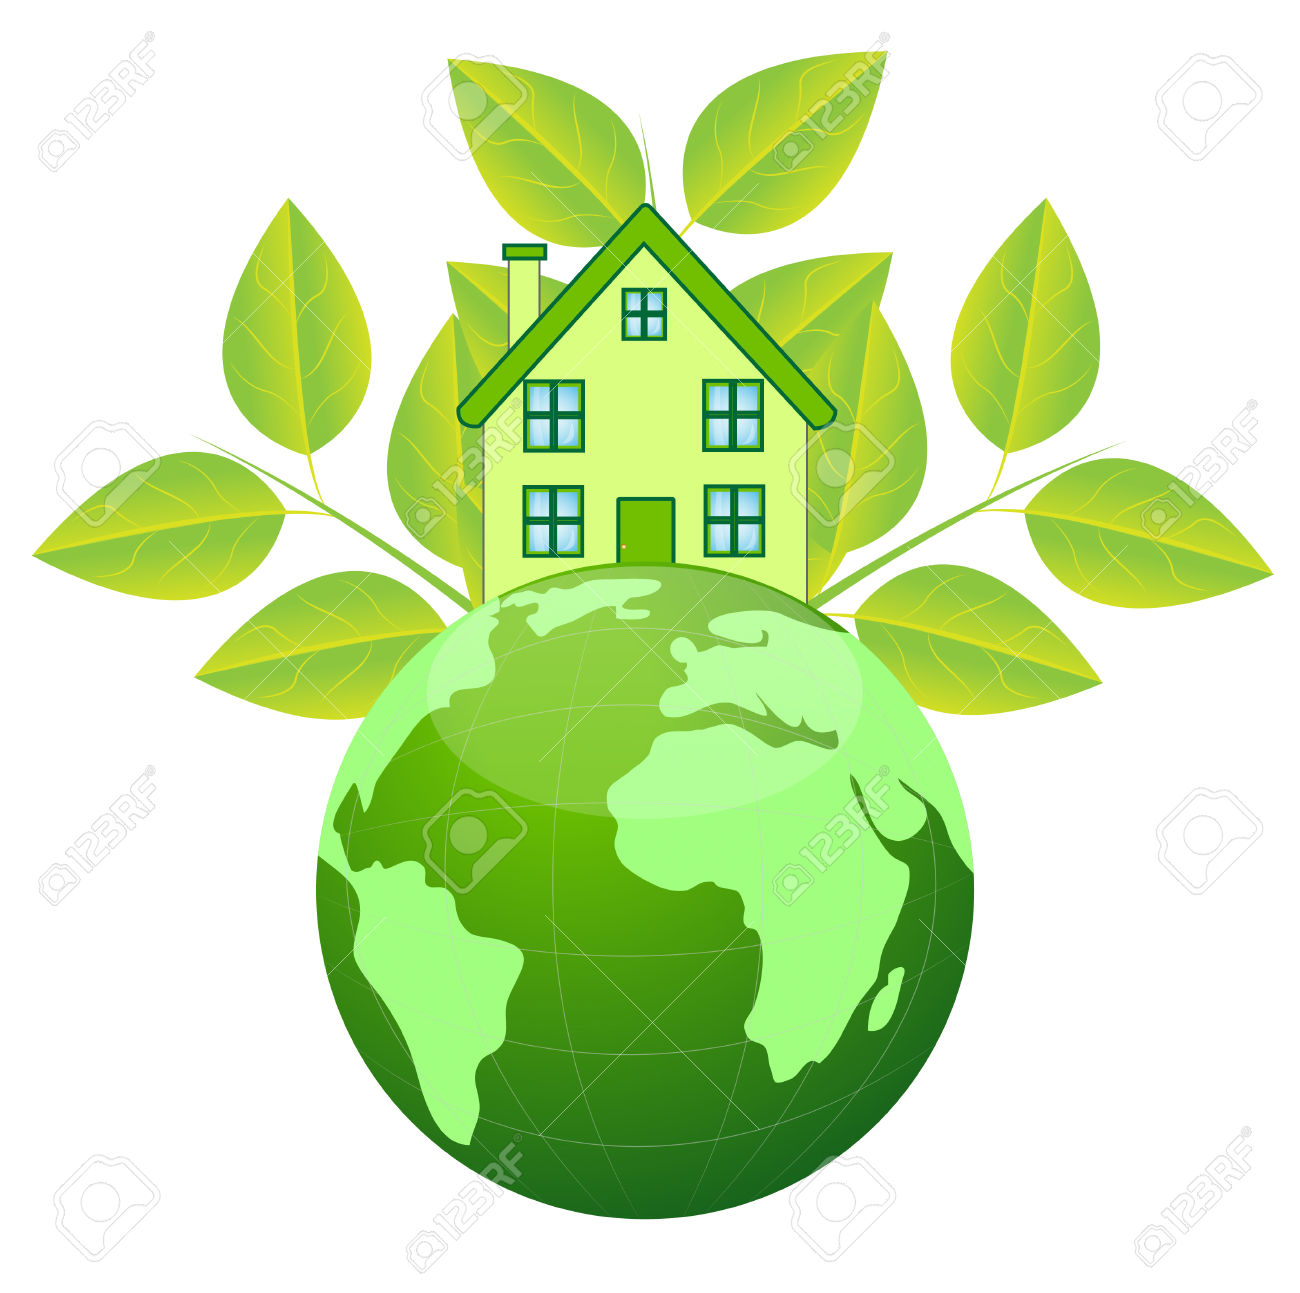 House And Planet Earth On A White Background Royalty Free Cliparts.